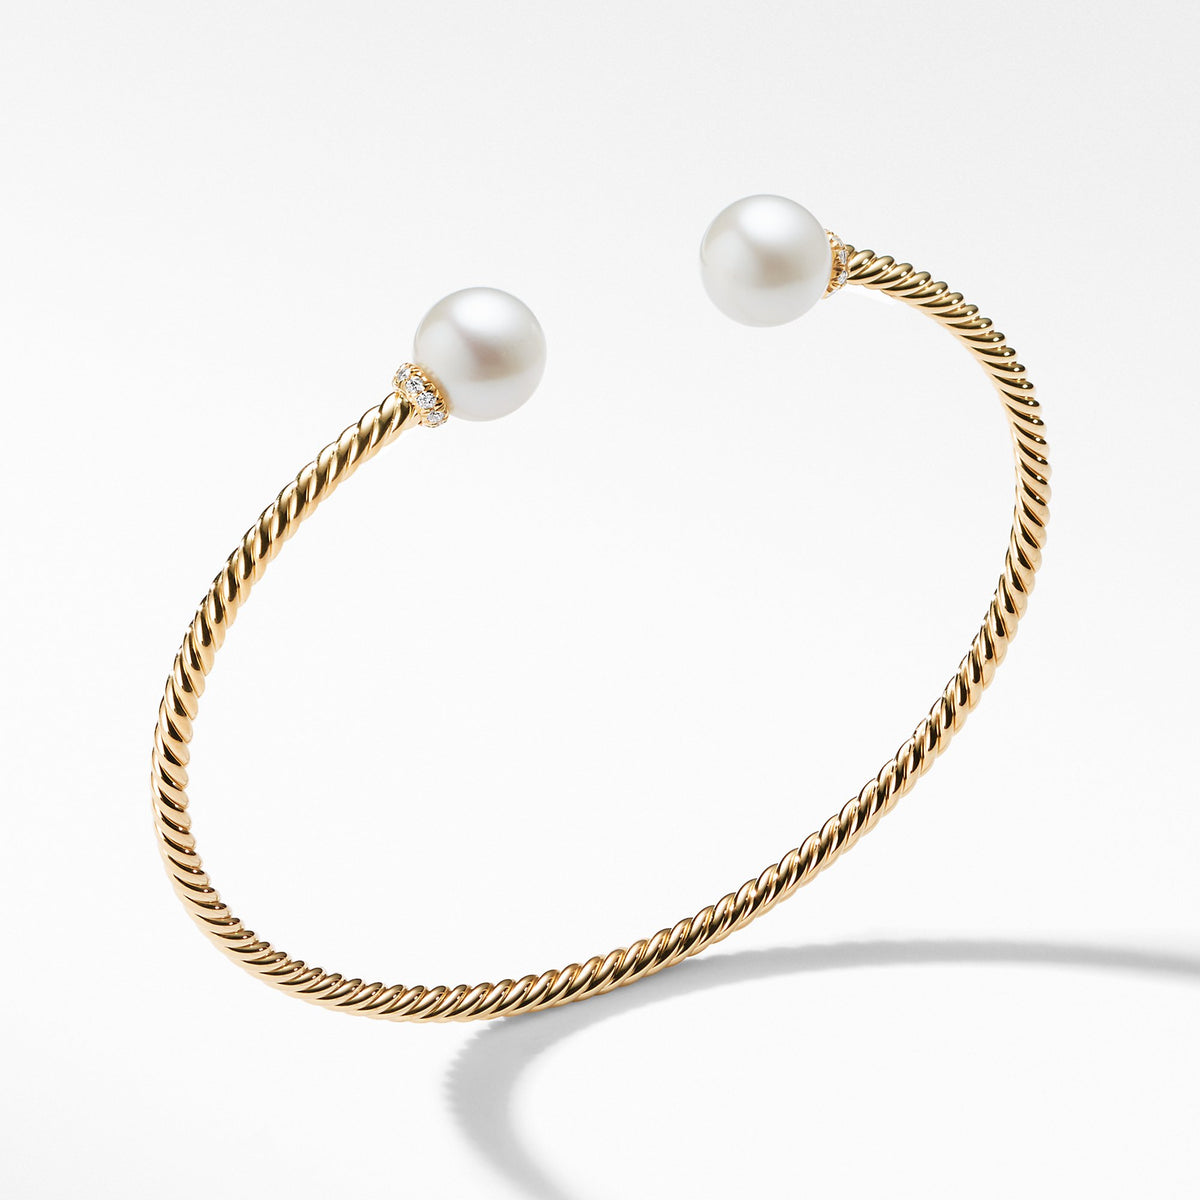 Bead Bracelet with Diamonds and Pearls in 18K Gold